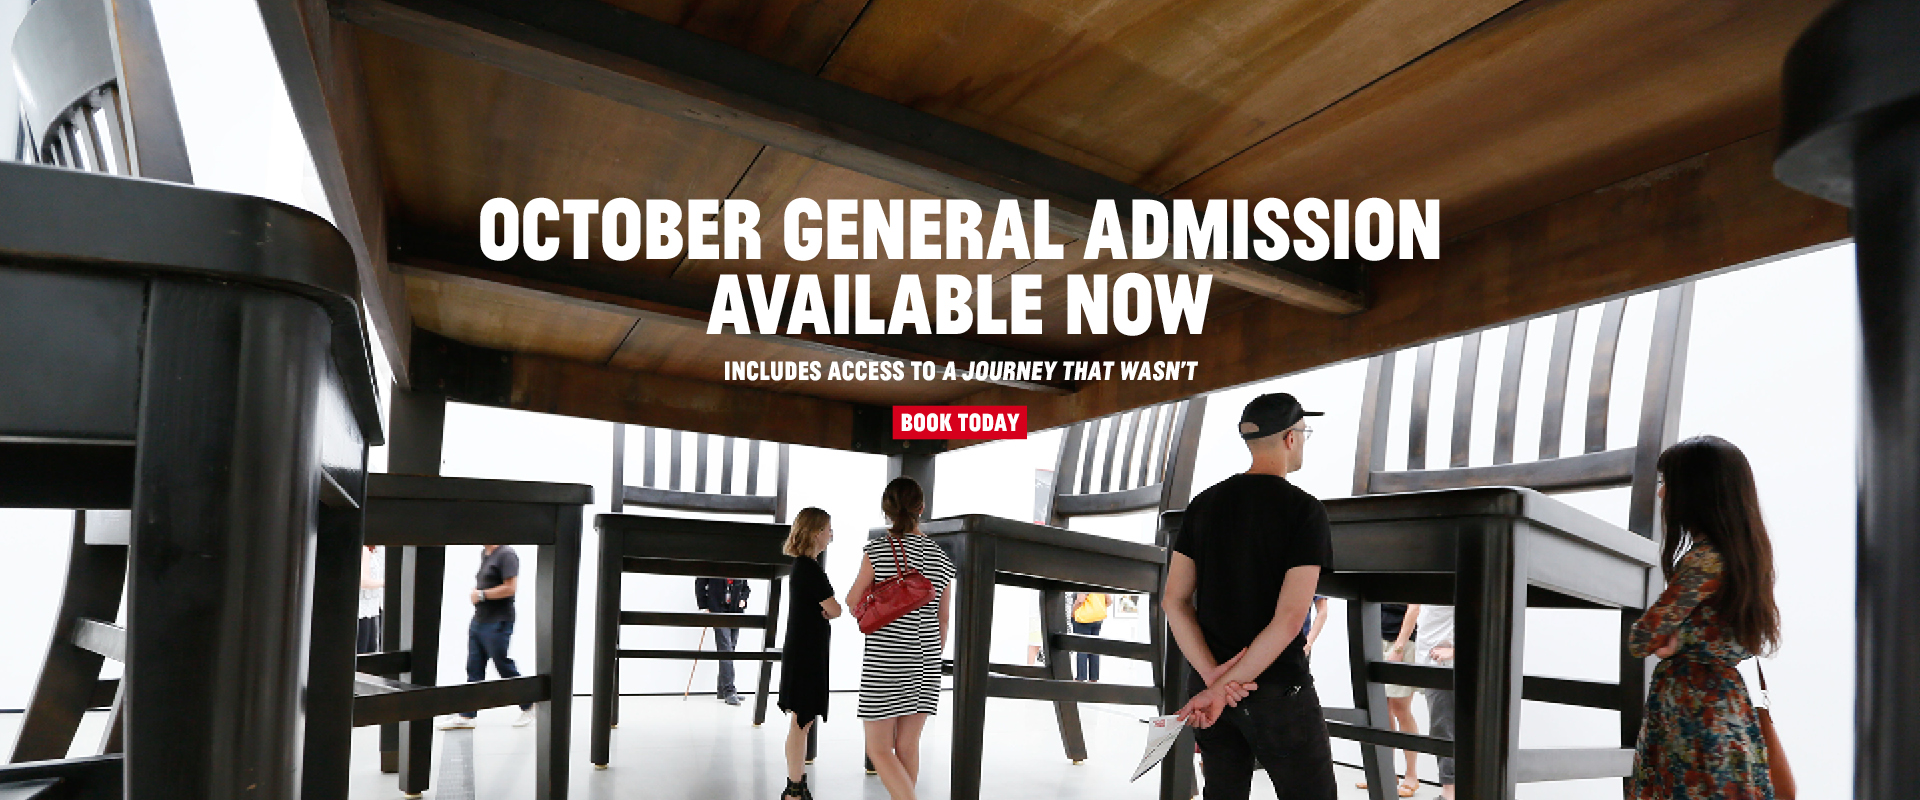 October general admission tickets are now available